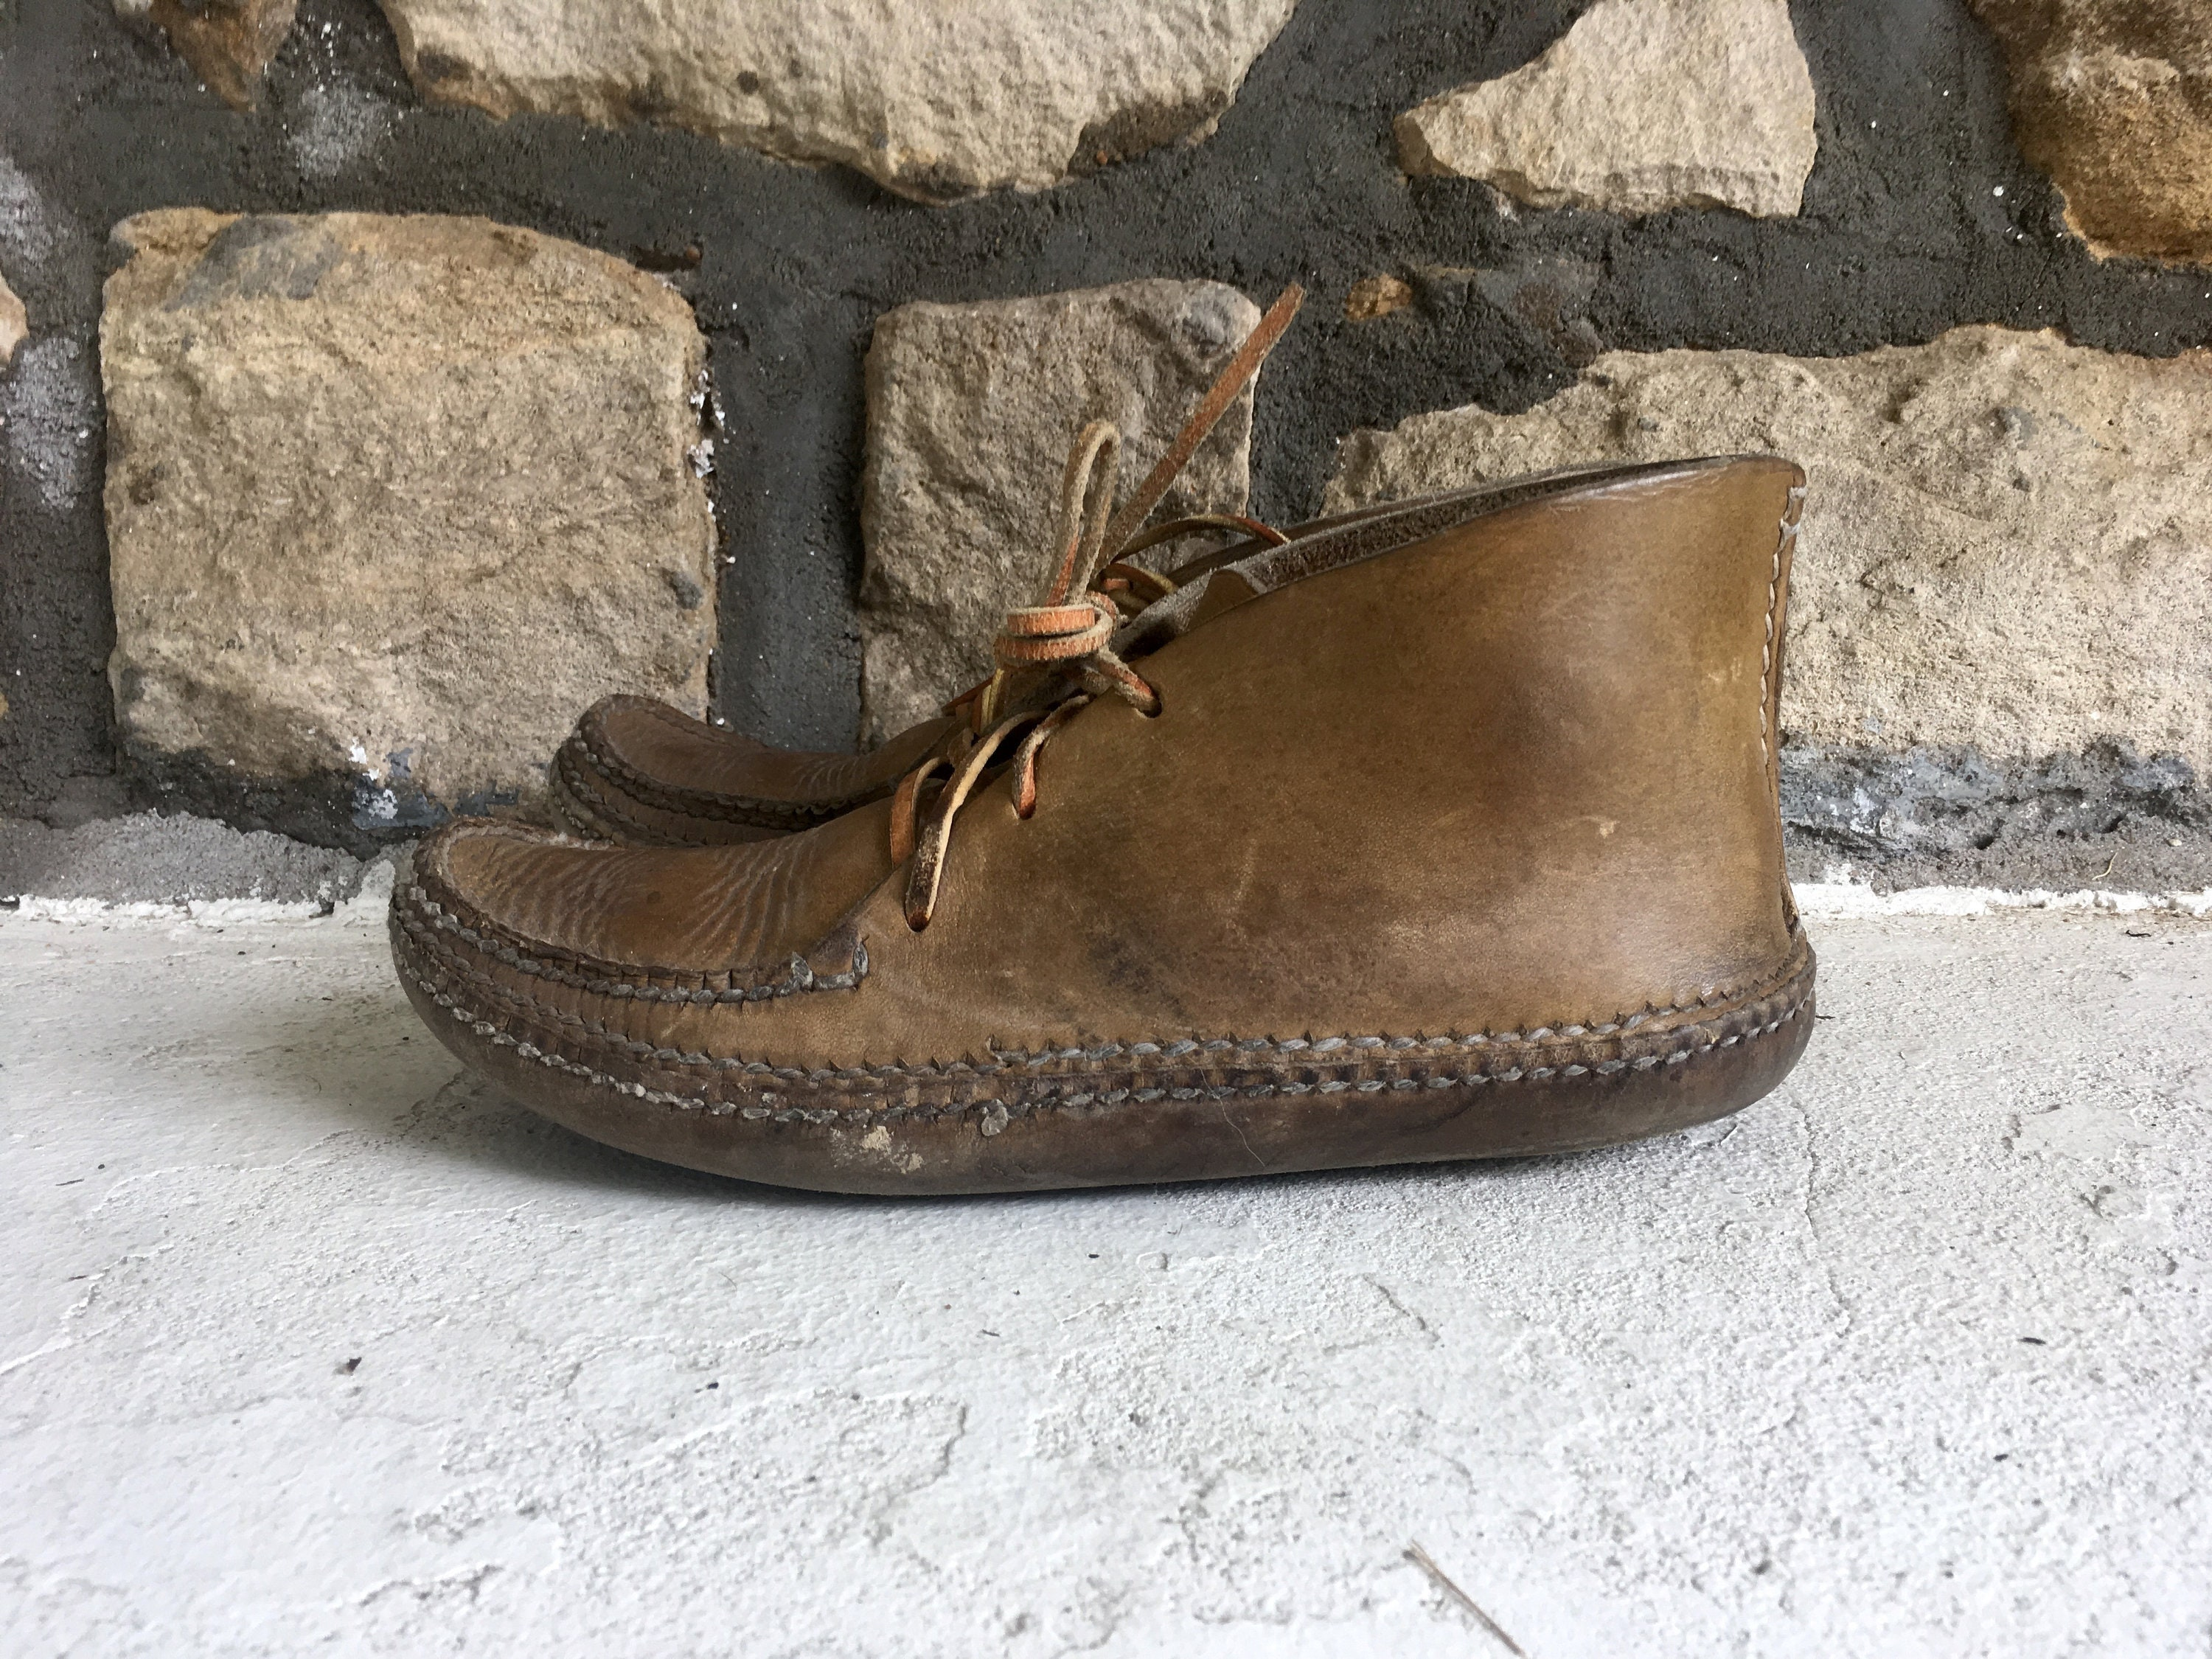 Vintage Mens Made 1960s 1970s Custom Hand Made Mens Leather Hippie MOCCASIN BOOTS Shoes Size 9 9.5 Boho Southwest 8cb6b4